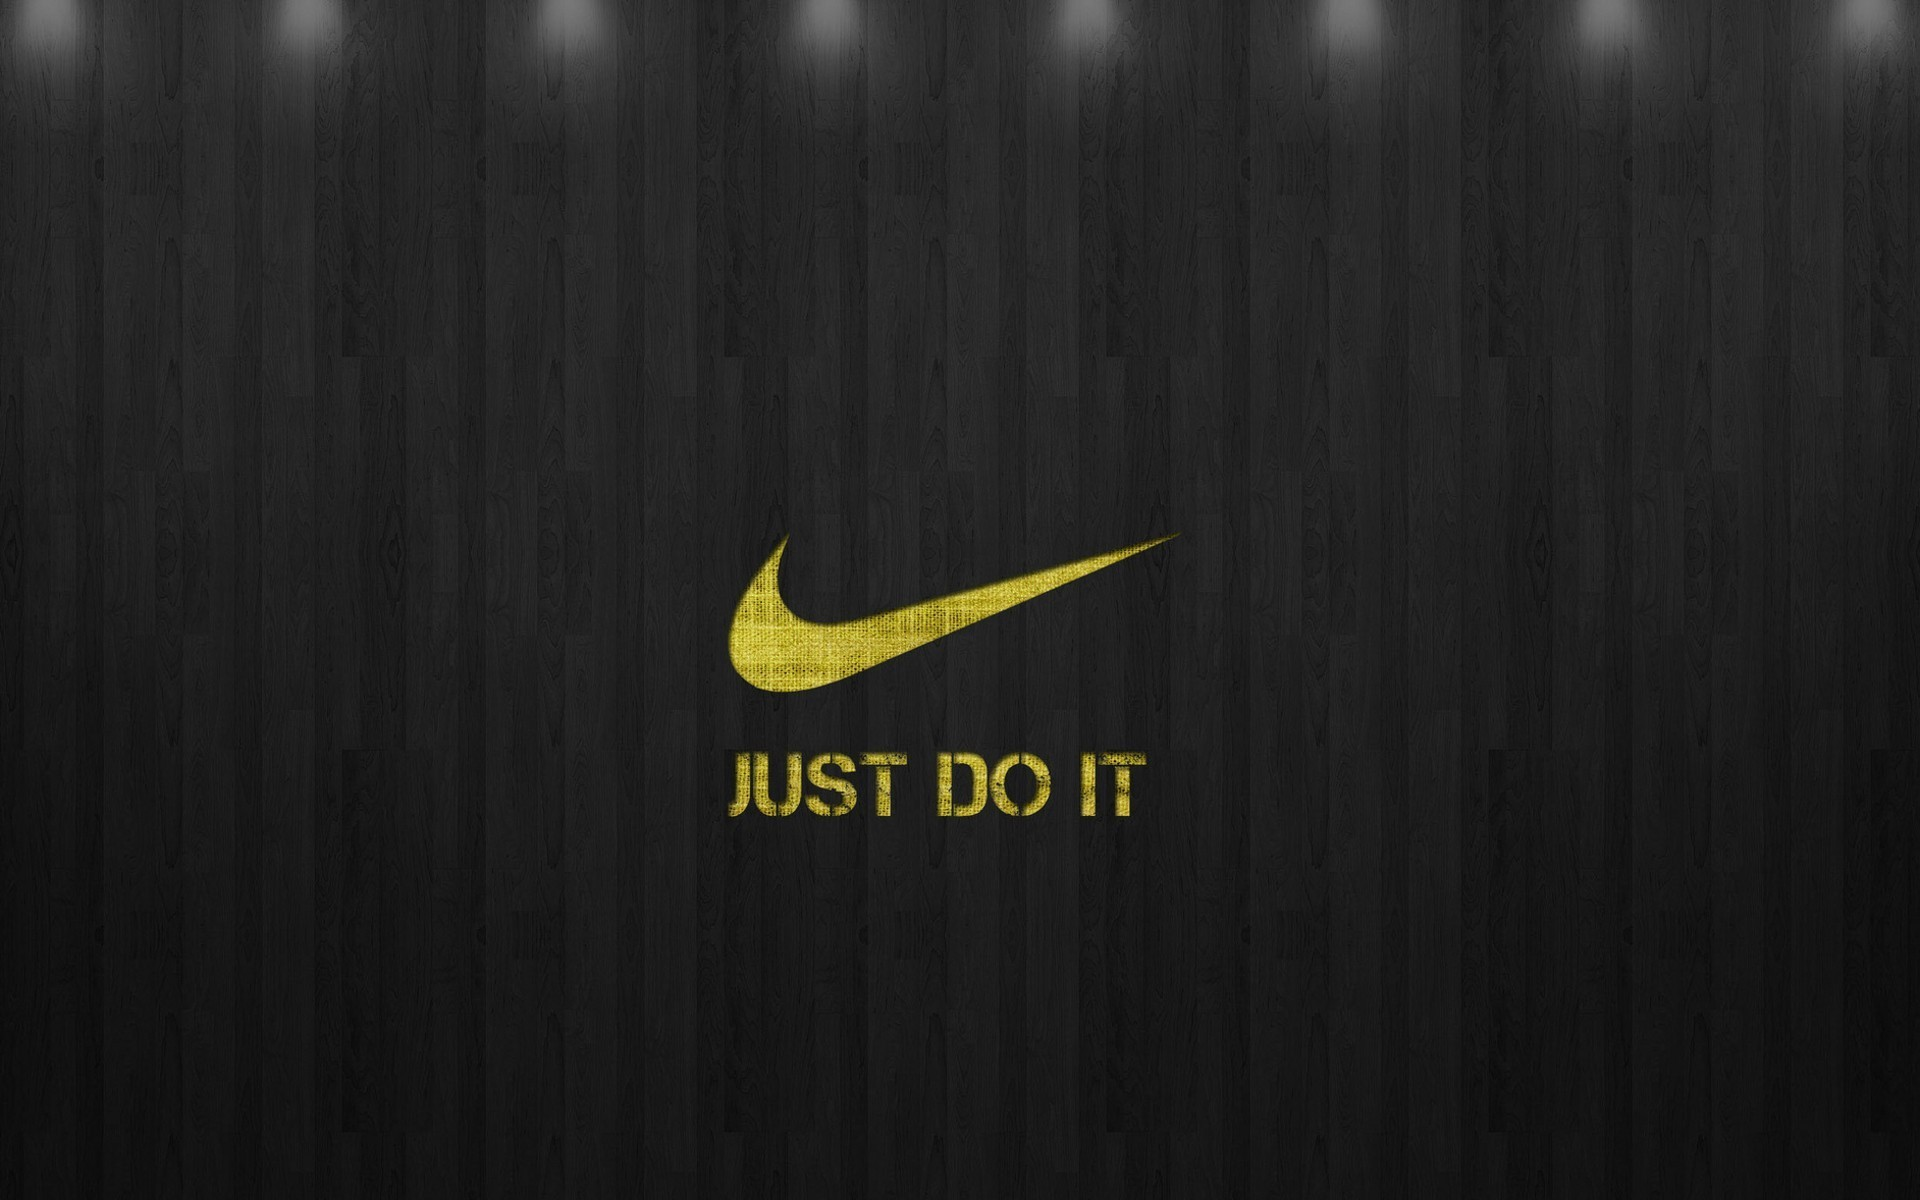 Just Do It Nike Brands Logos Sports Wallpaper